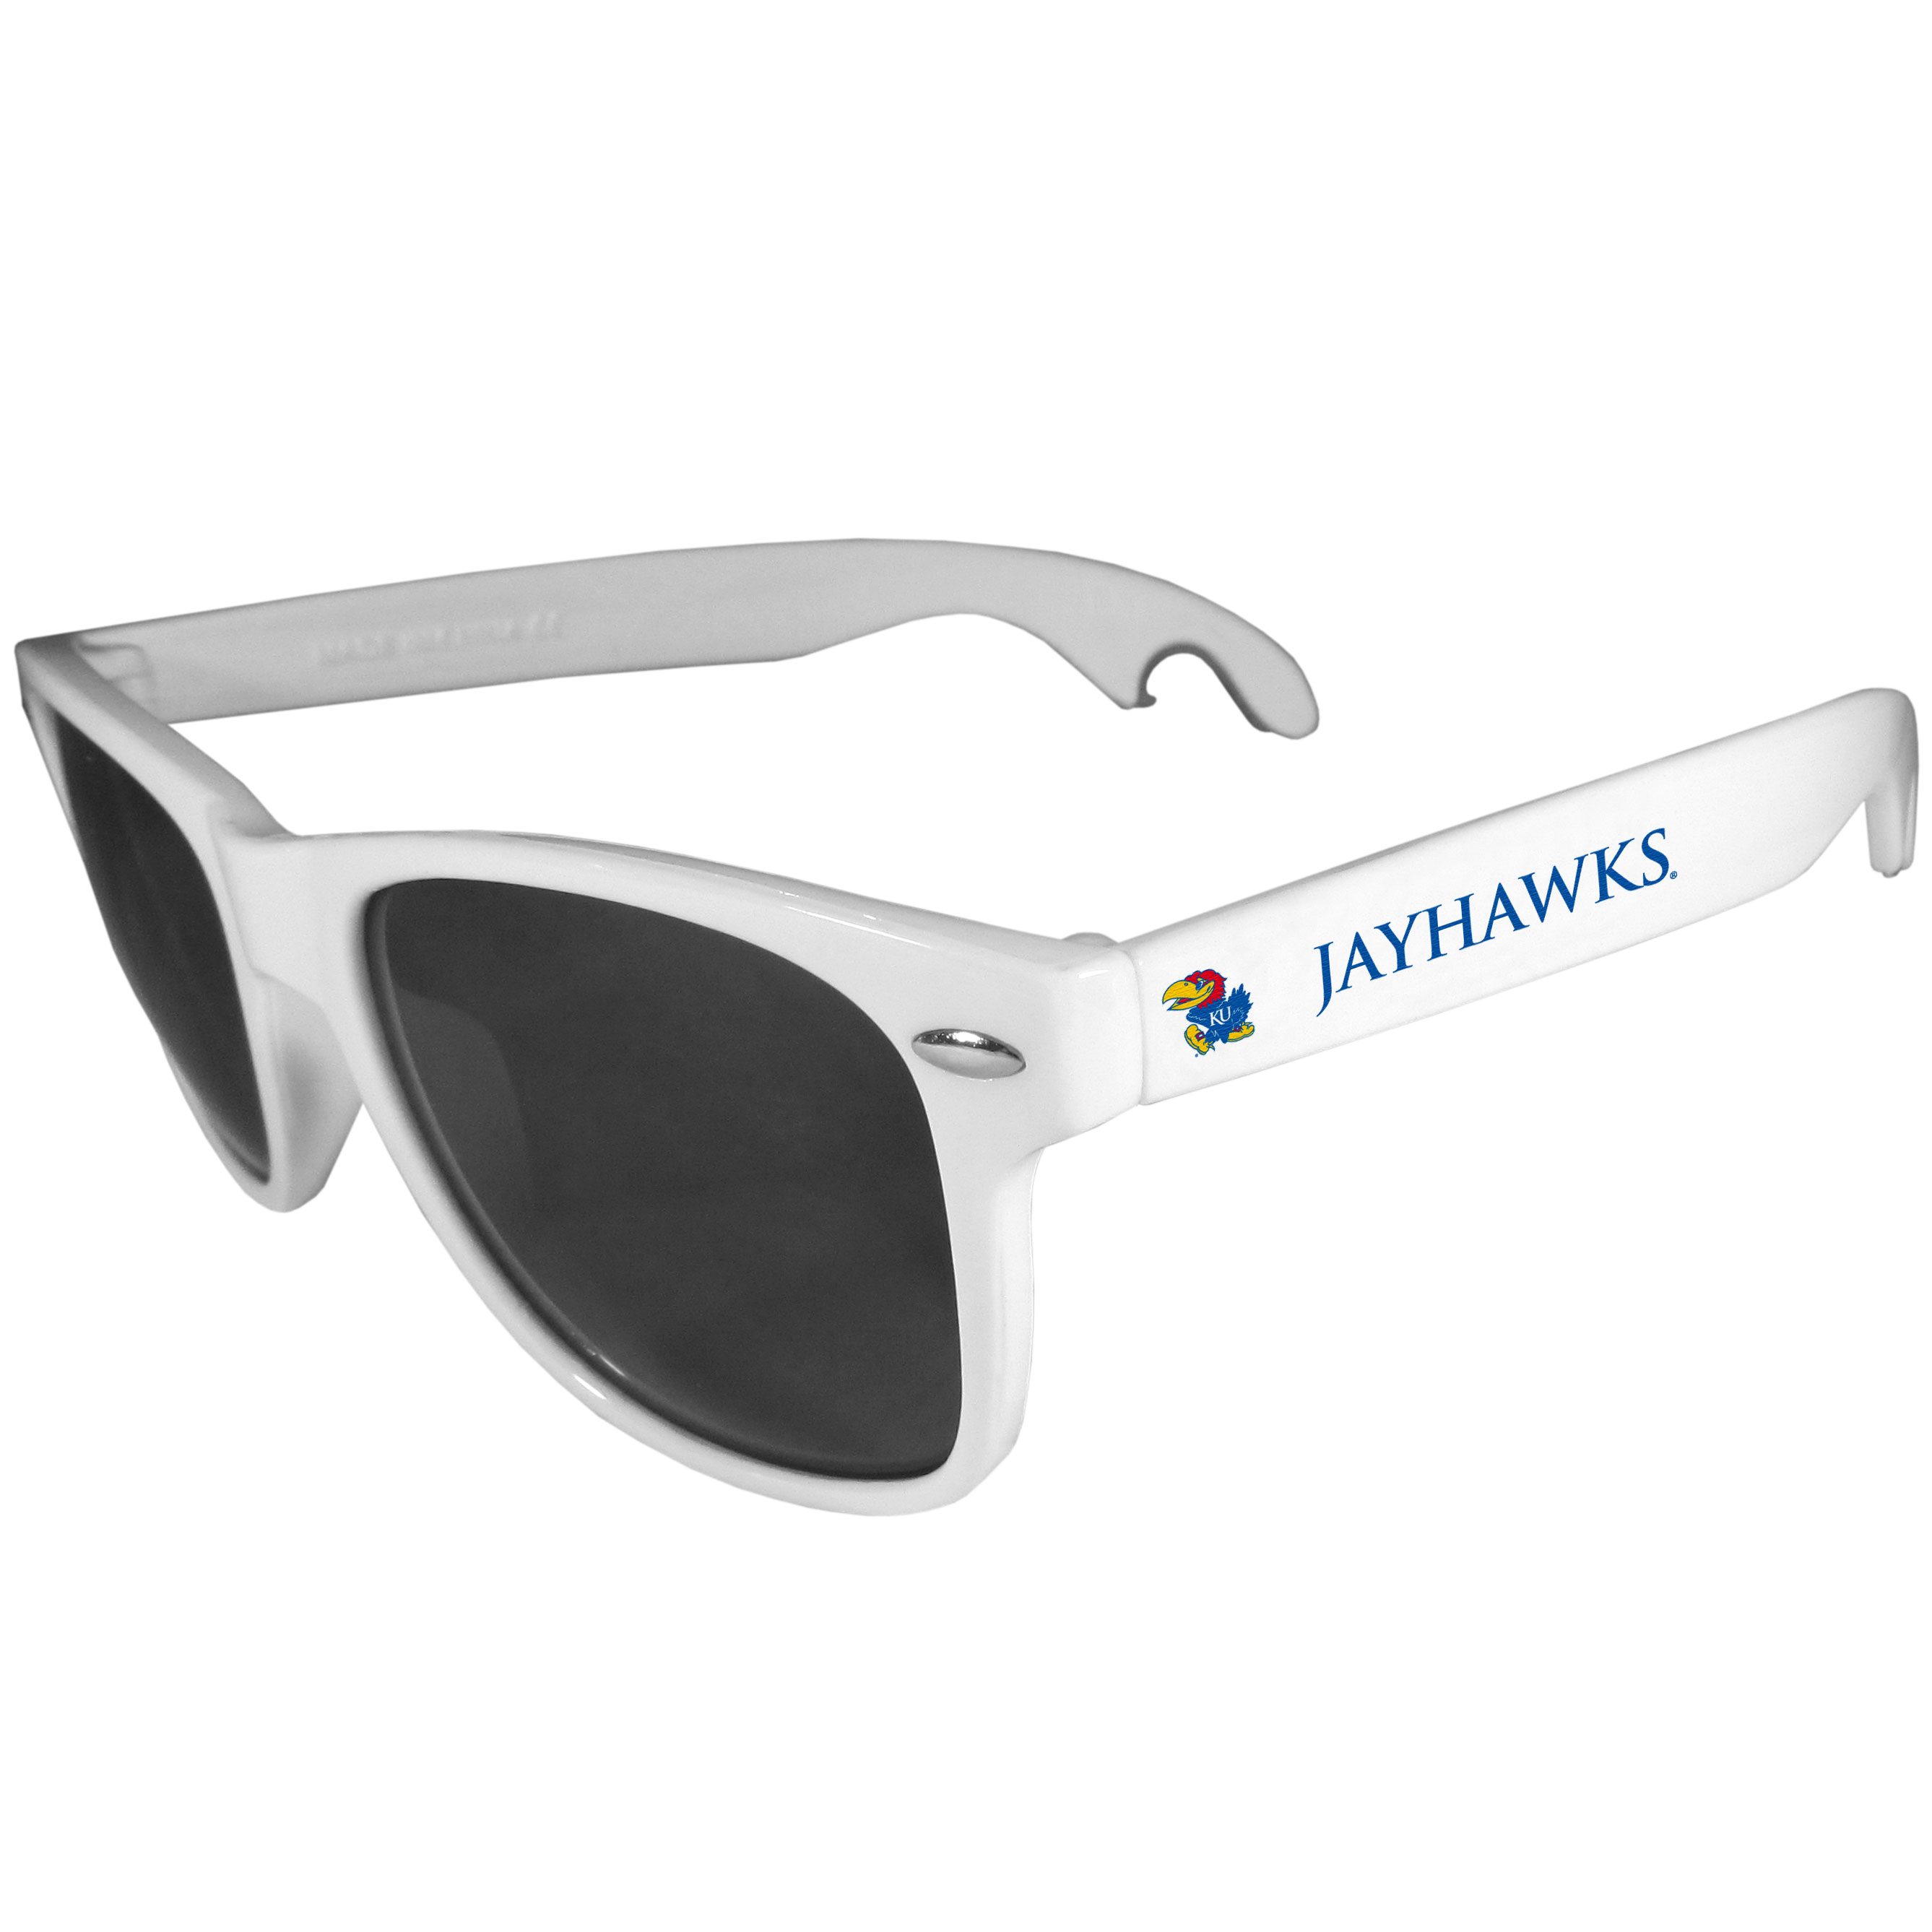 Kansas Jayhawks Beachfarer Bottle Opener Sunglasses, White - Seriously, these sunglasses open bottles! Keep the party going with these amazing Kansas Jayhawks bottle opener sunglasses. The stylish retro frames feature team designs on the arms and functional bottle openers on the end of the arms. Whether you are at the beach or having a backyard BBQ on game day, these shades will keep your eyes protected with 100% UVA/UVB protection and keep you hydrated with the handy bottle opener arms.